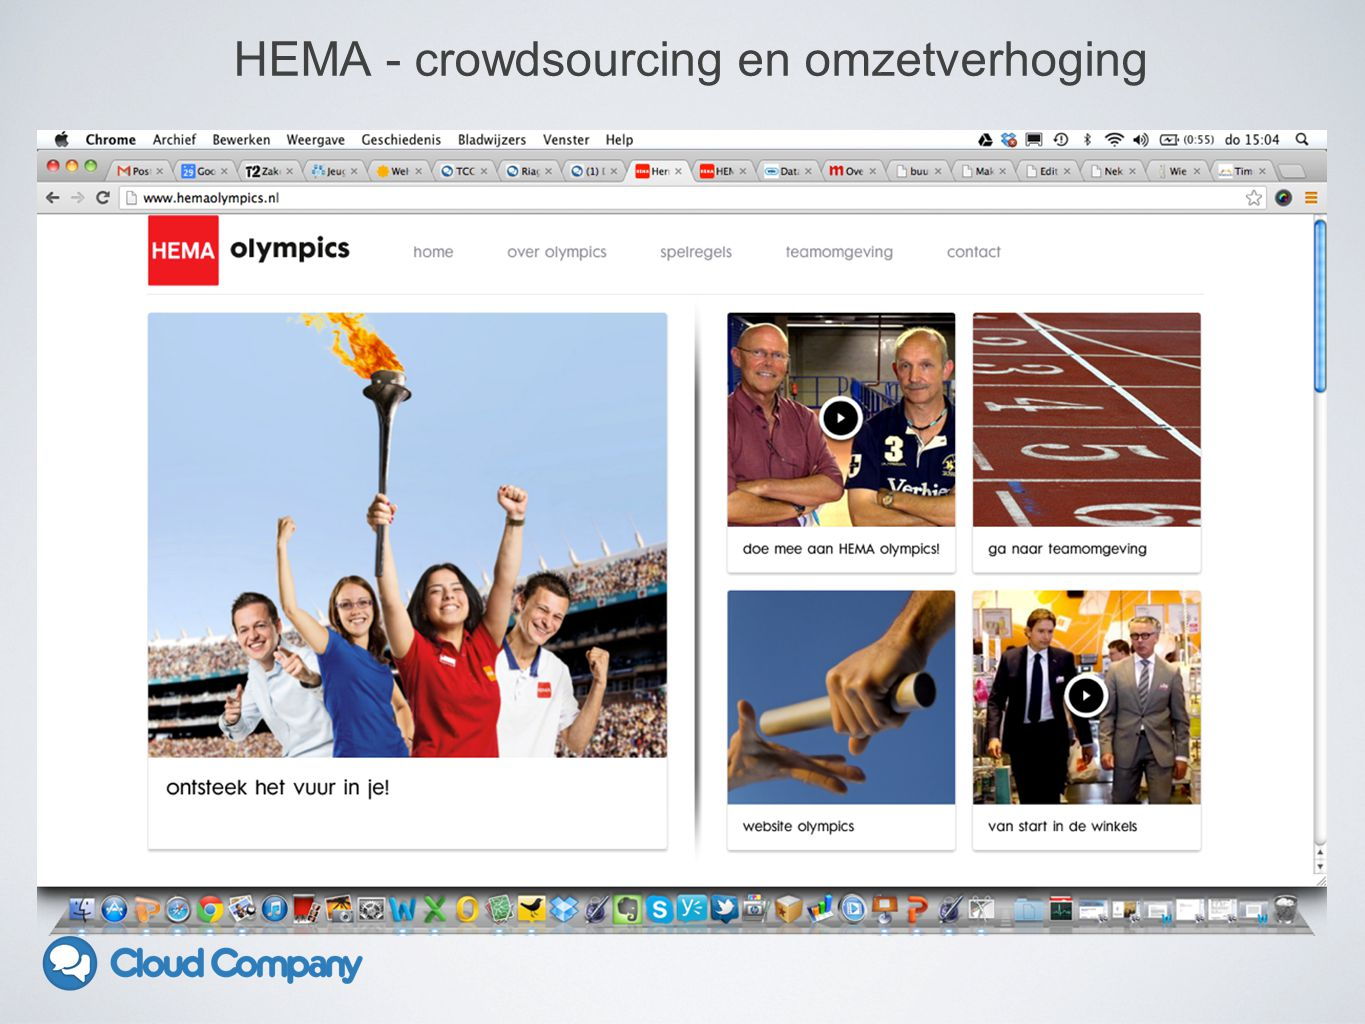 HEMA - crowdsourcing en omzetverhoging